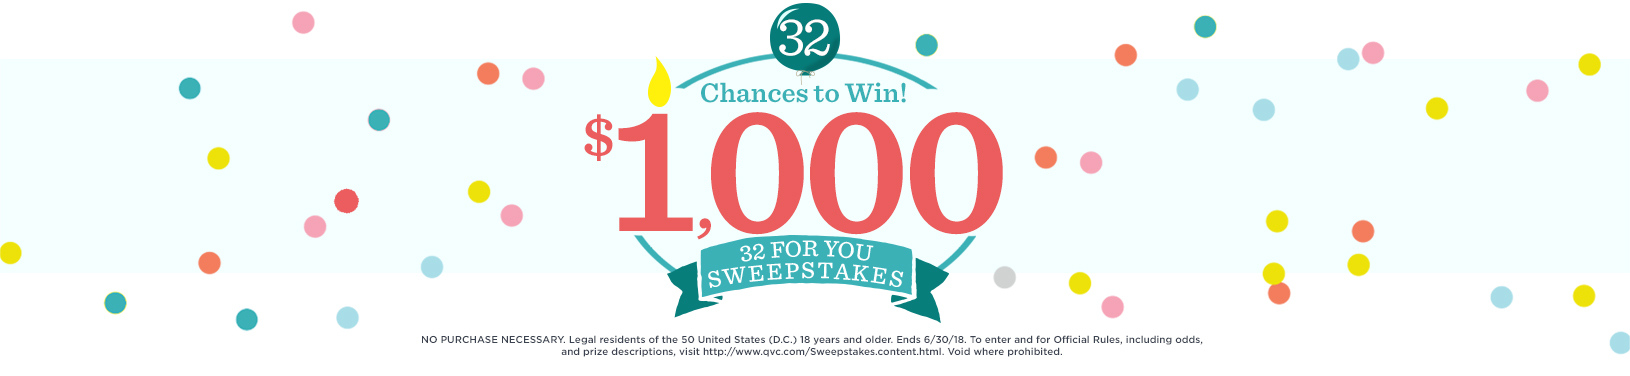 32 Chances to Win $1,000. 32 For You Sweepstakes.  NO PURCHASE NECESSARY. Legal residents of the 50 United States (D.C.) 18 years and older. Ends 6/30/18. To enter and for Official Rules, including odds, and prize descriptions, visit https://www.qvc.com/Sweepstakes.content.html. Void where prohibited.